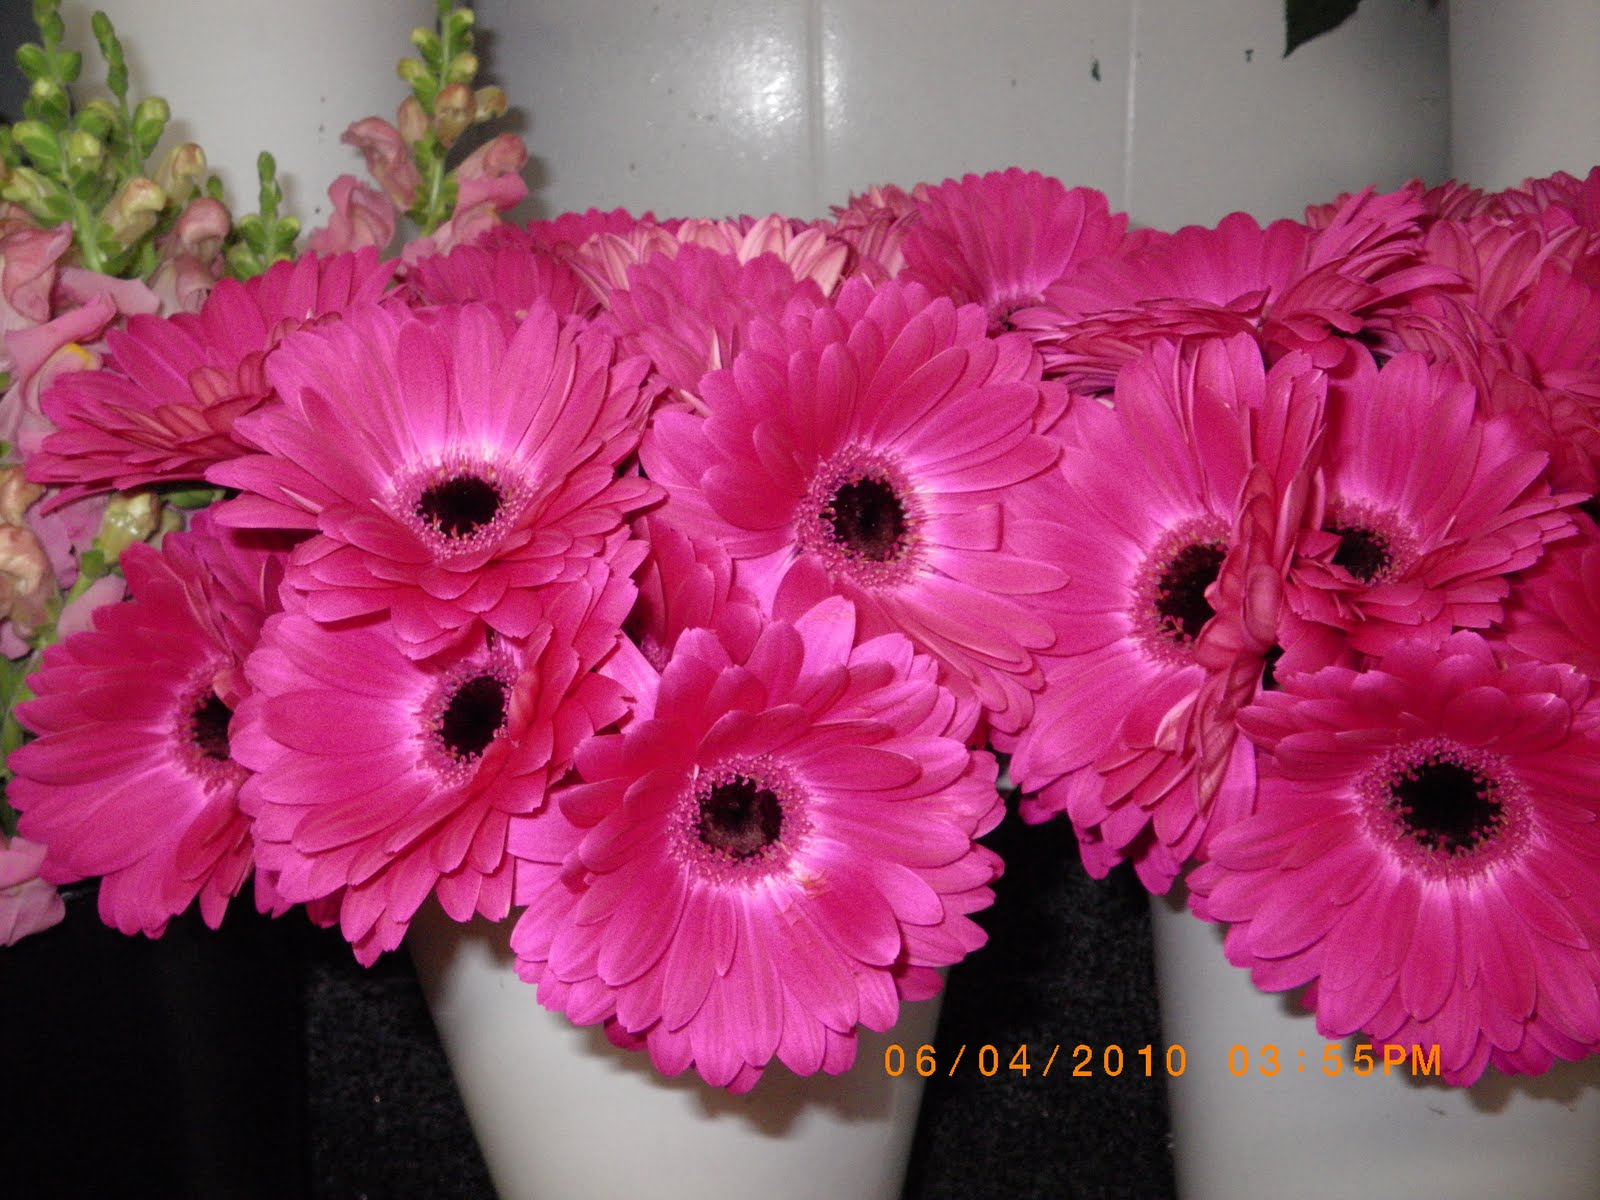 The Story Of Quik Pik Flowers: Check Out The Gerbera Daisy